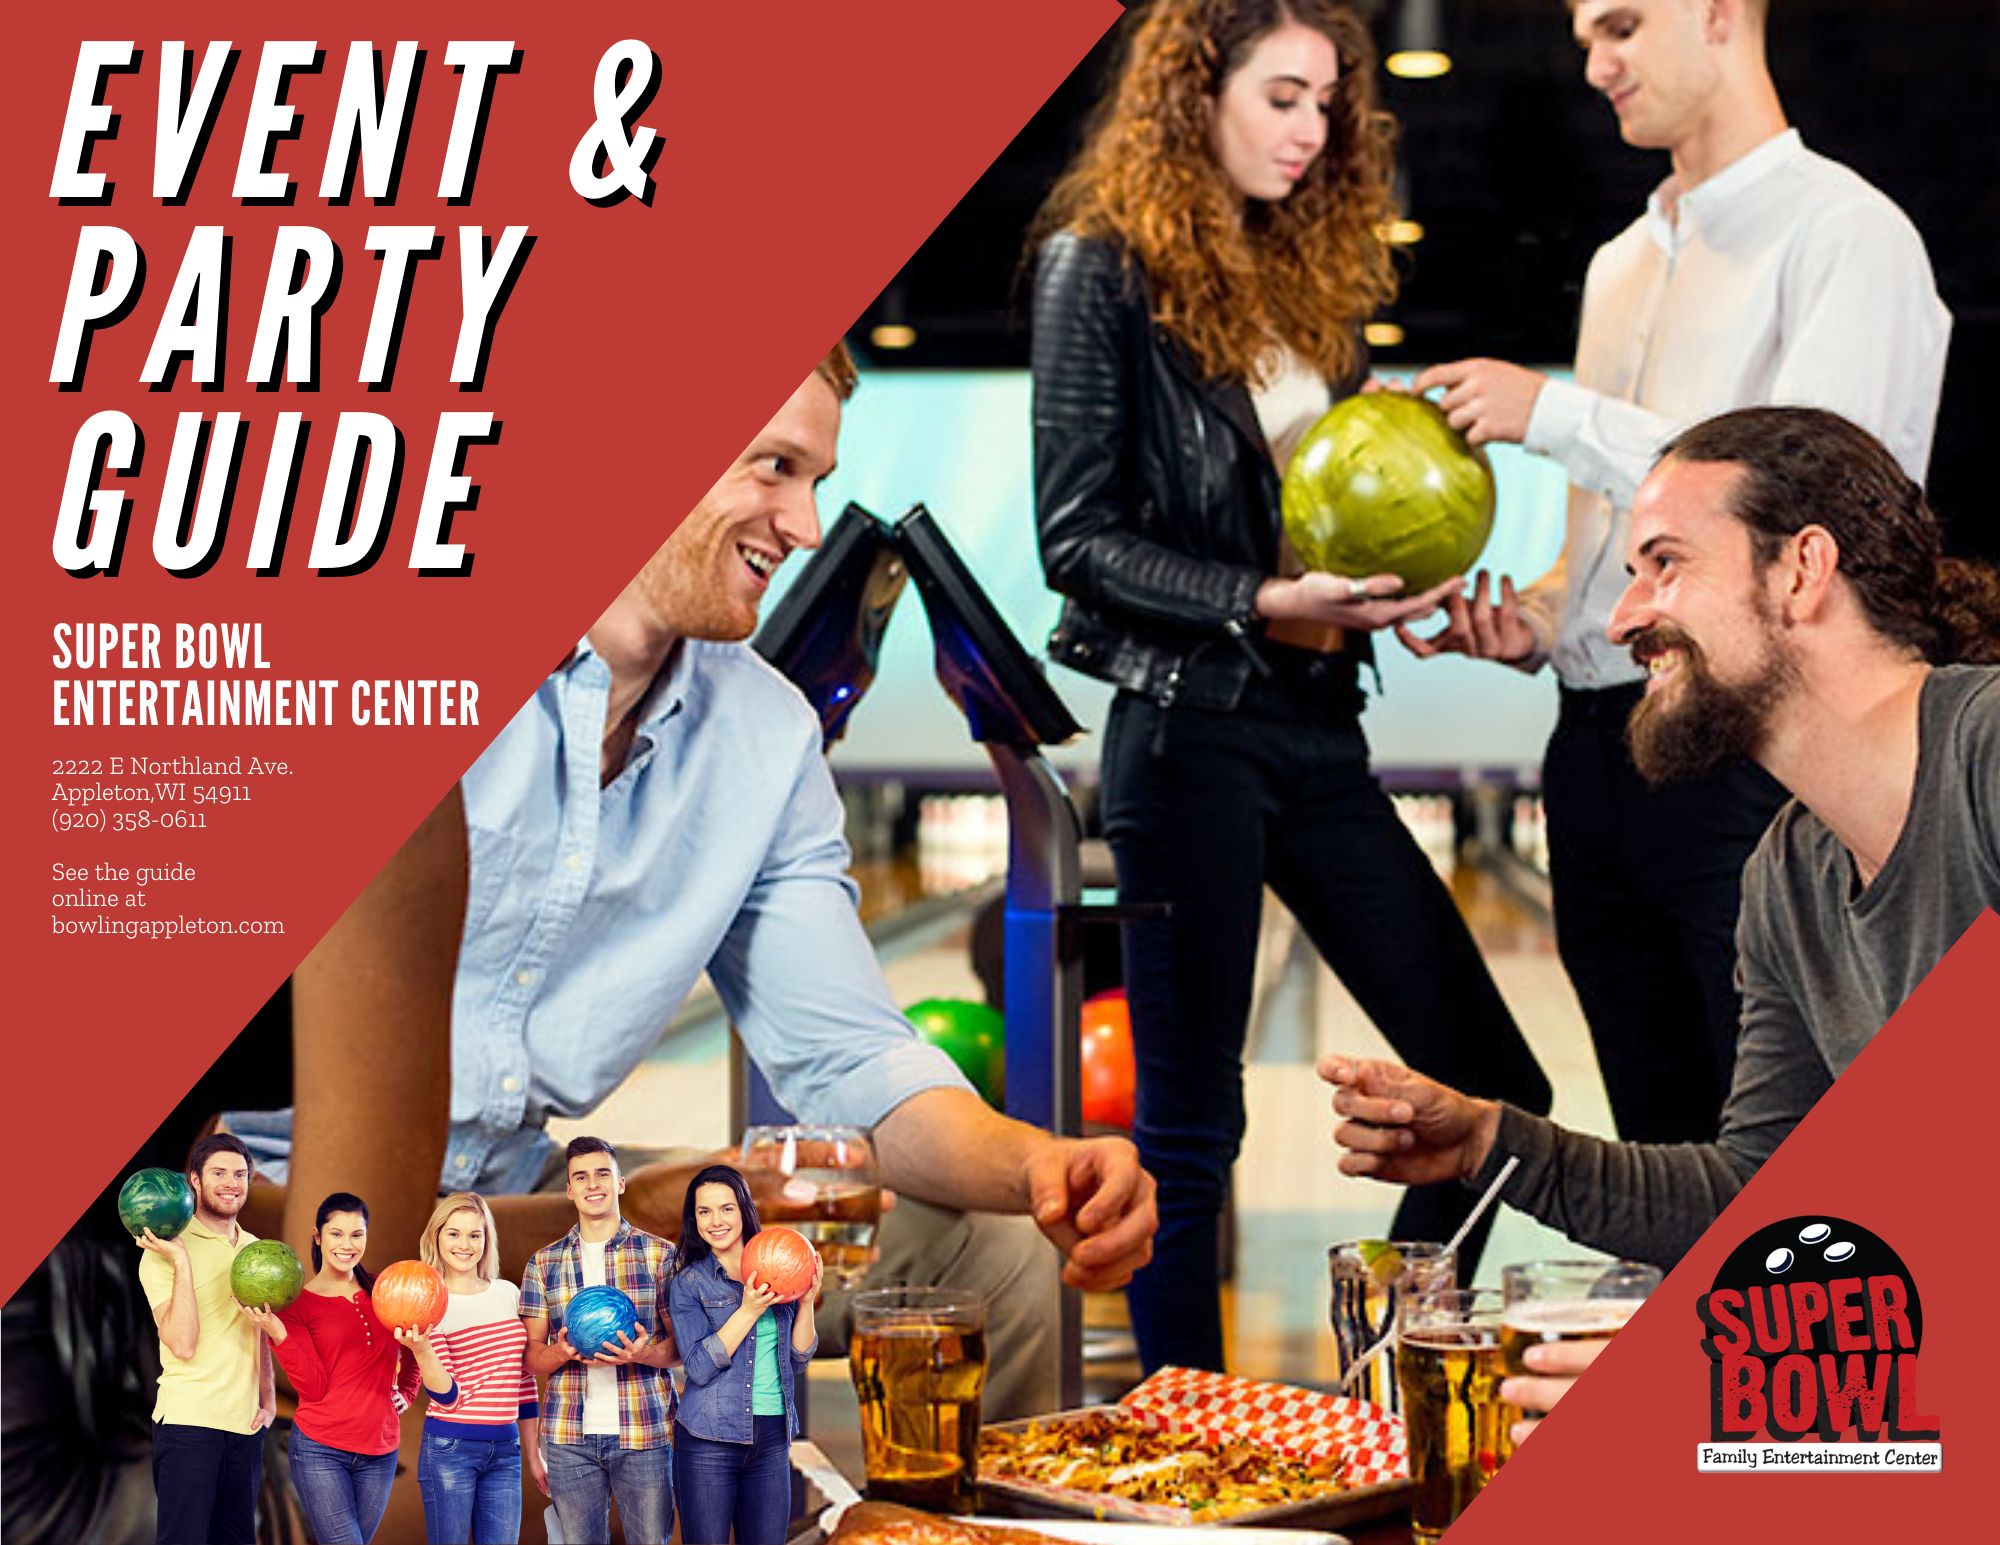 super bowl's holiday party guide oct 2020 | holiday parties at super bowl entertainment center | bowling holiday parties | holiday events at super bowl | super bowl family entertainment center | appleton, wi